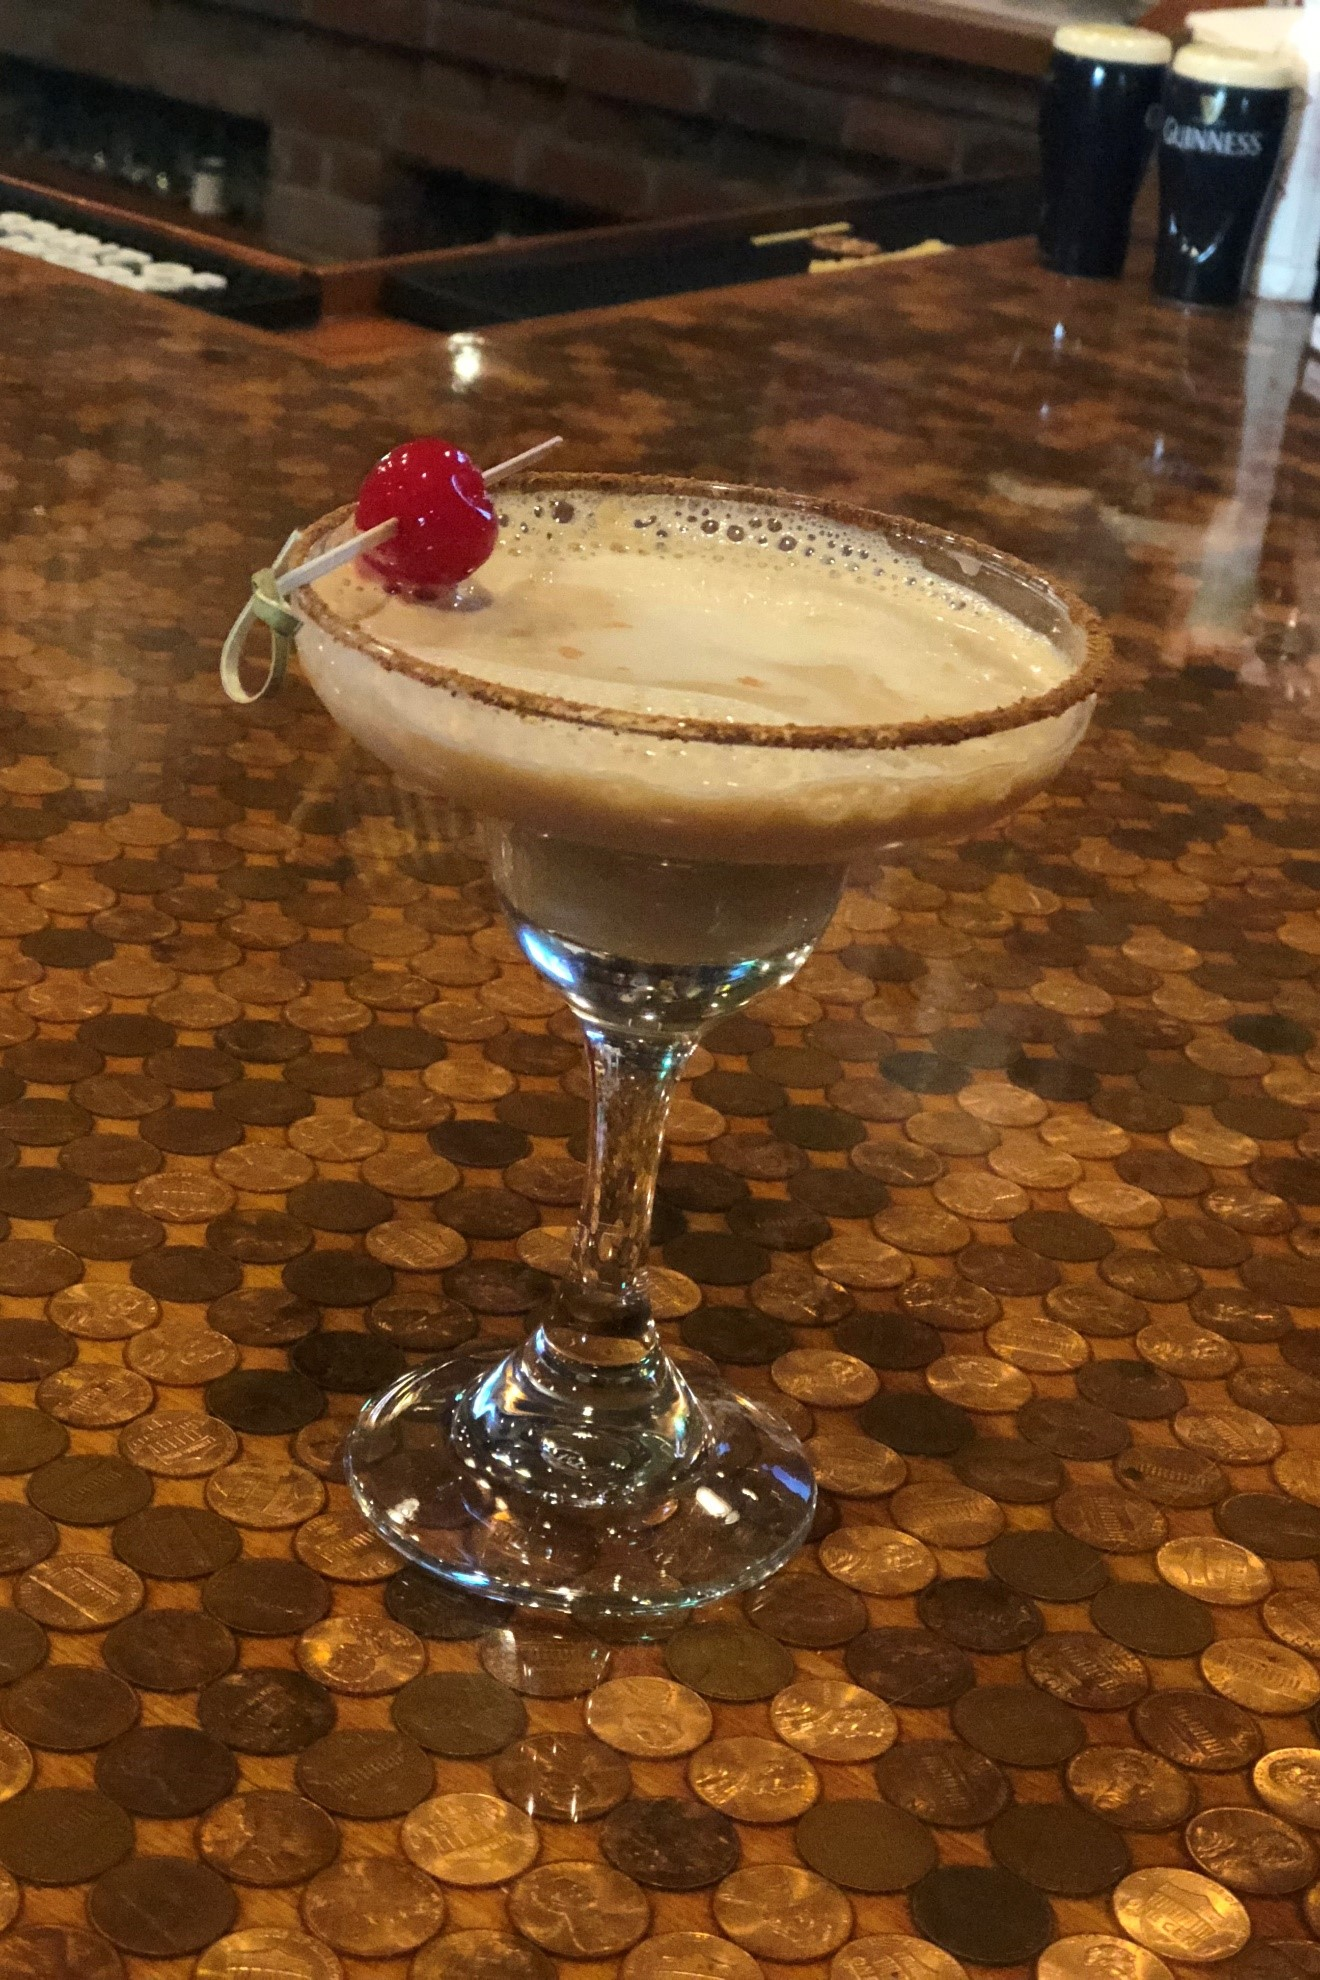 chocolate martini topped with a cherry